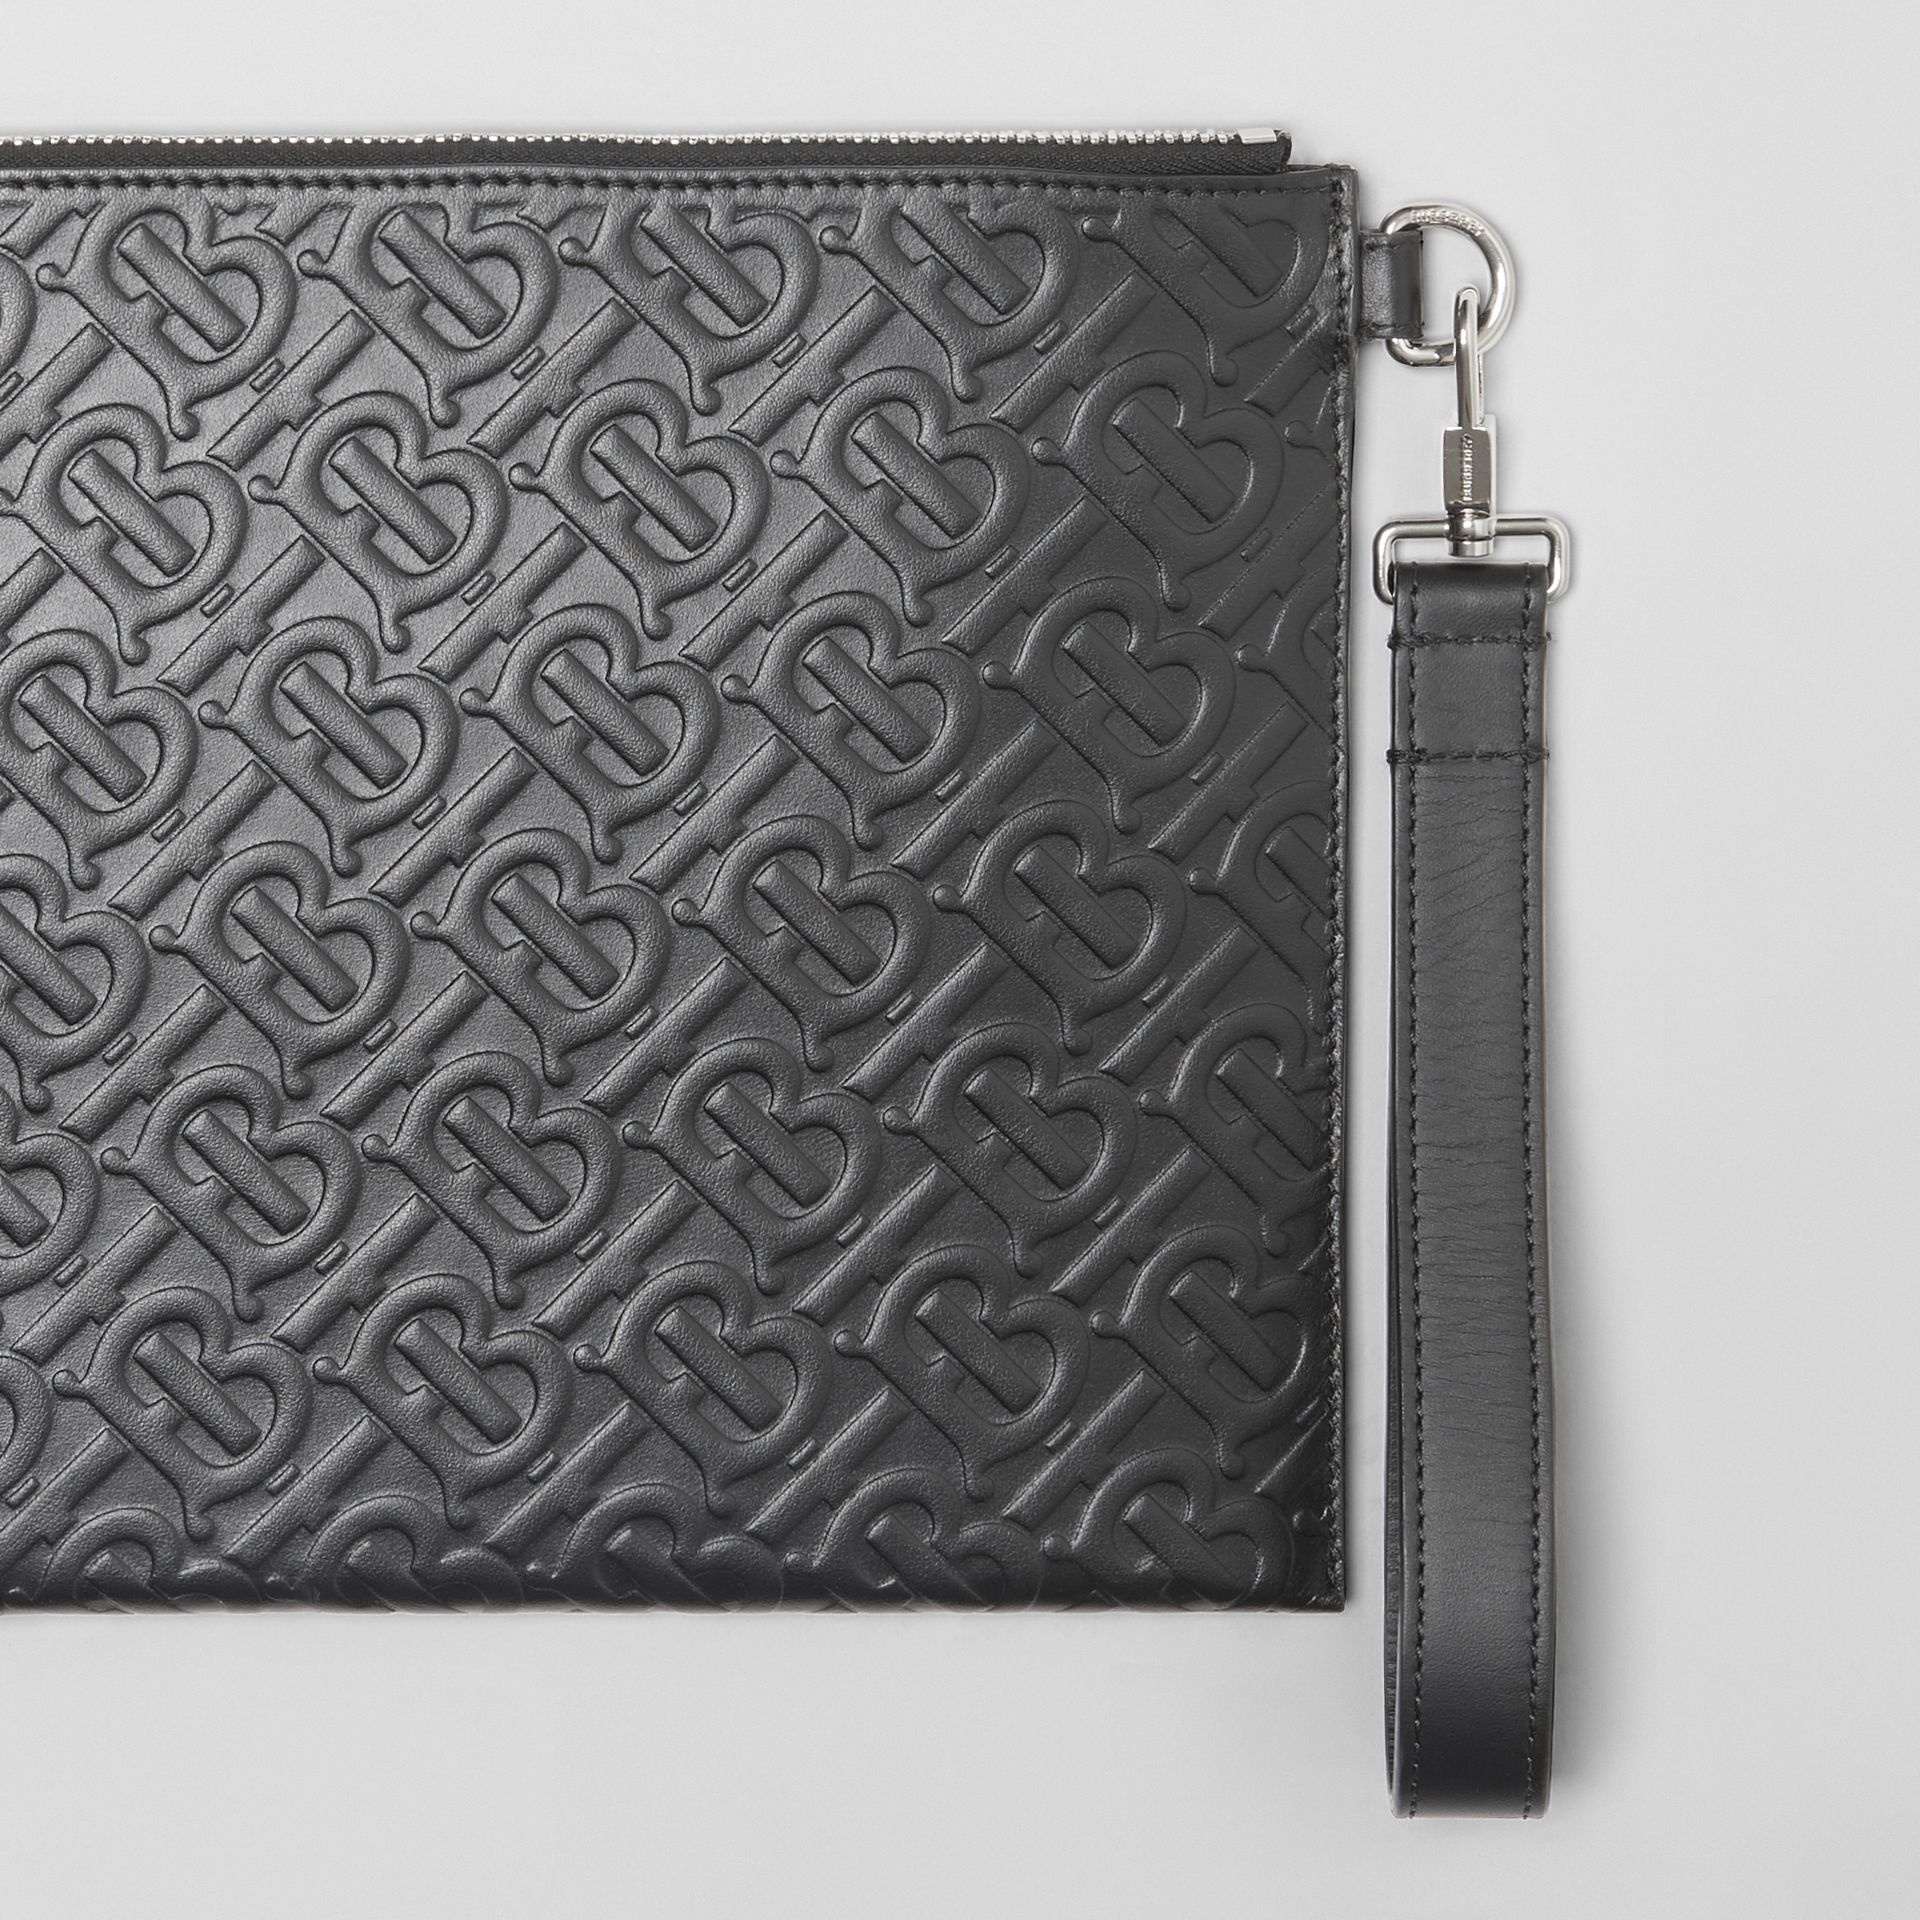 Monogram Leather Zip Pouch in Black | Burberry United Kingdom - gallery image 1